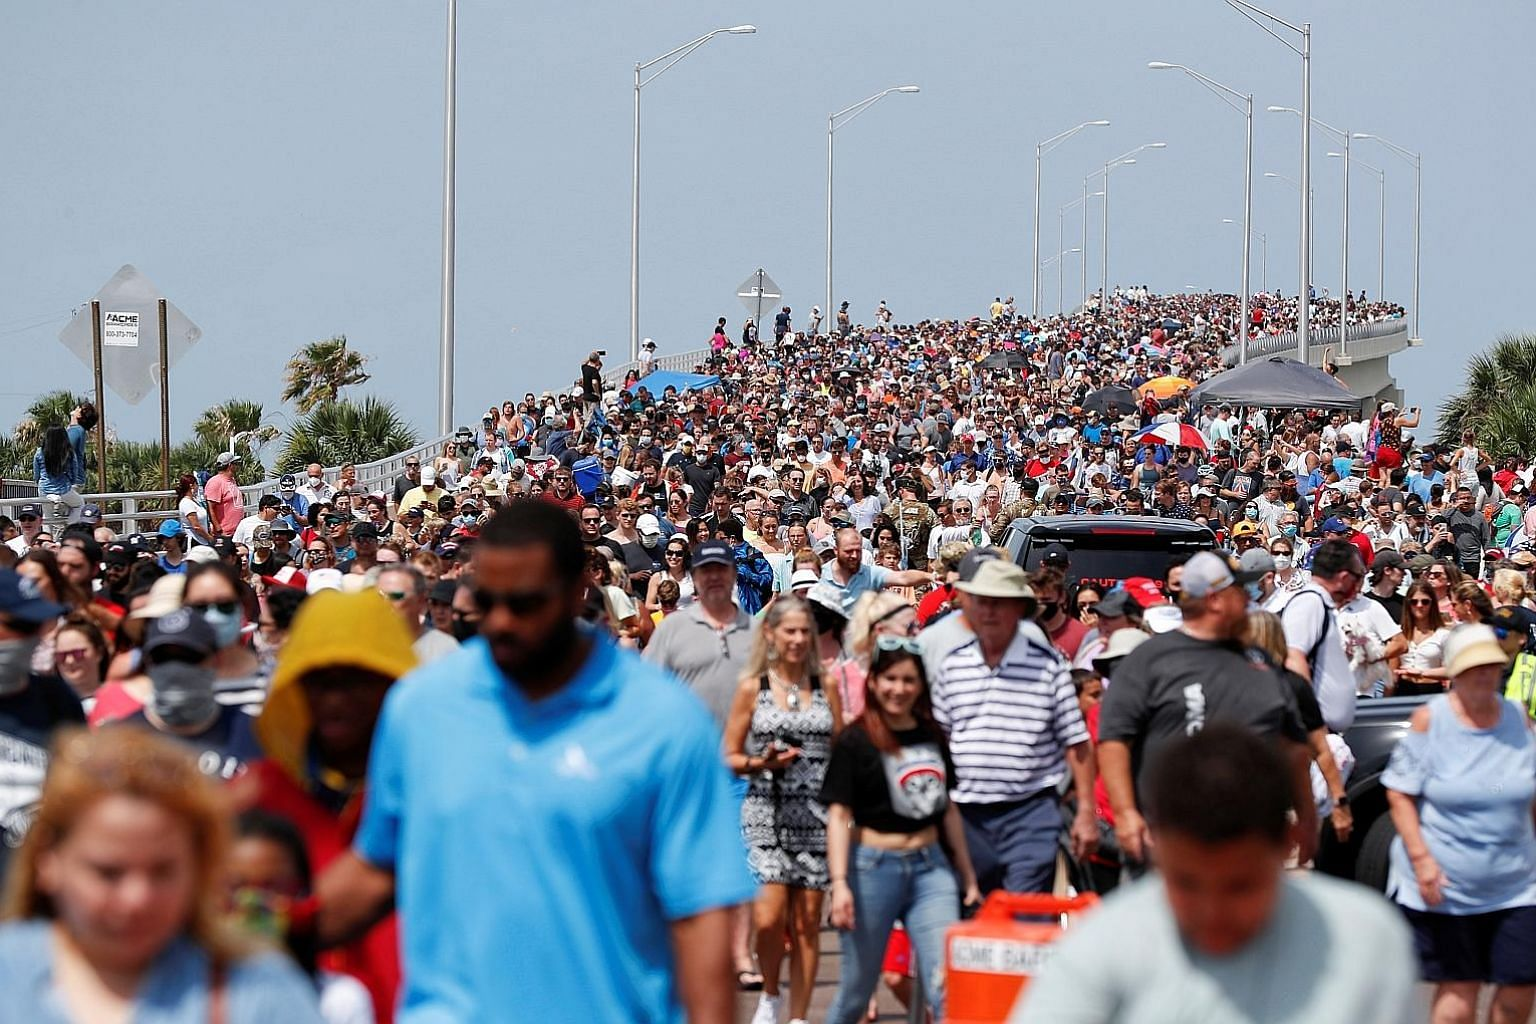 People gathering to watch the launch of the SpaceX Falcon 9 rocket carrying the Crew Dragon capsule in Cape Canaveral, Florida, on Saturday.